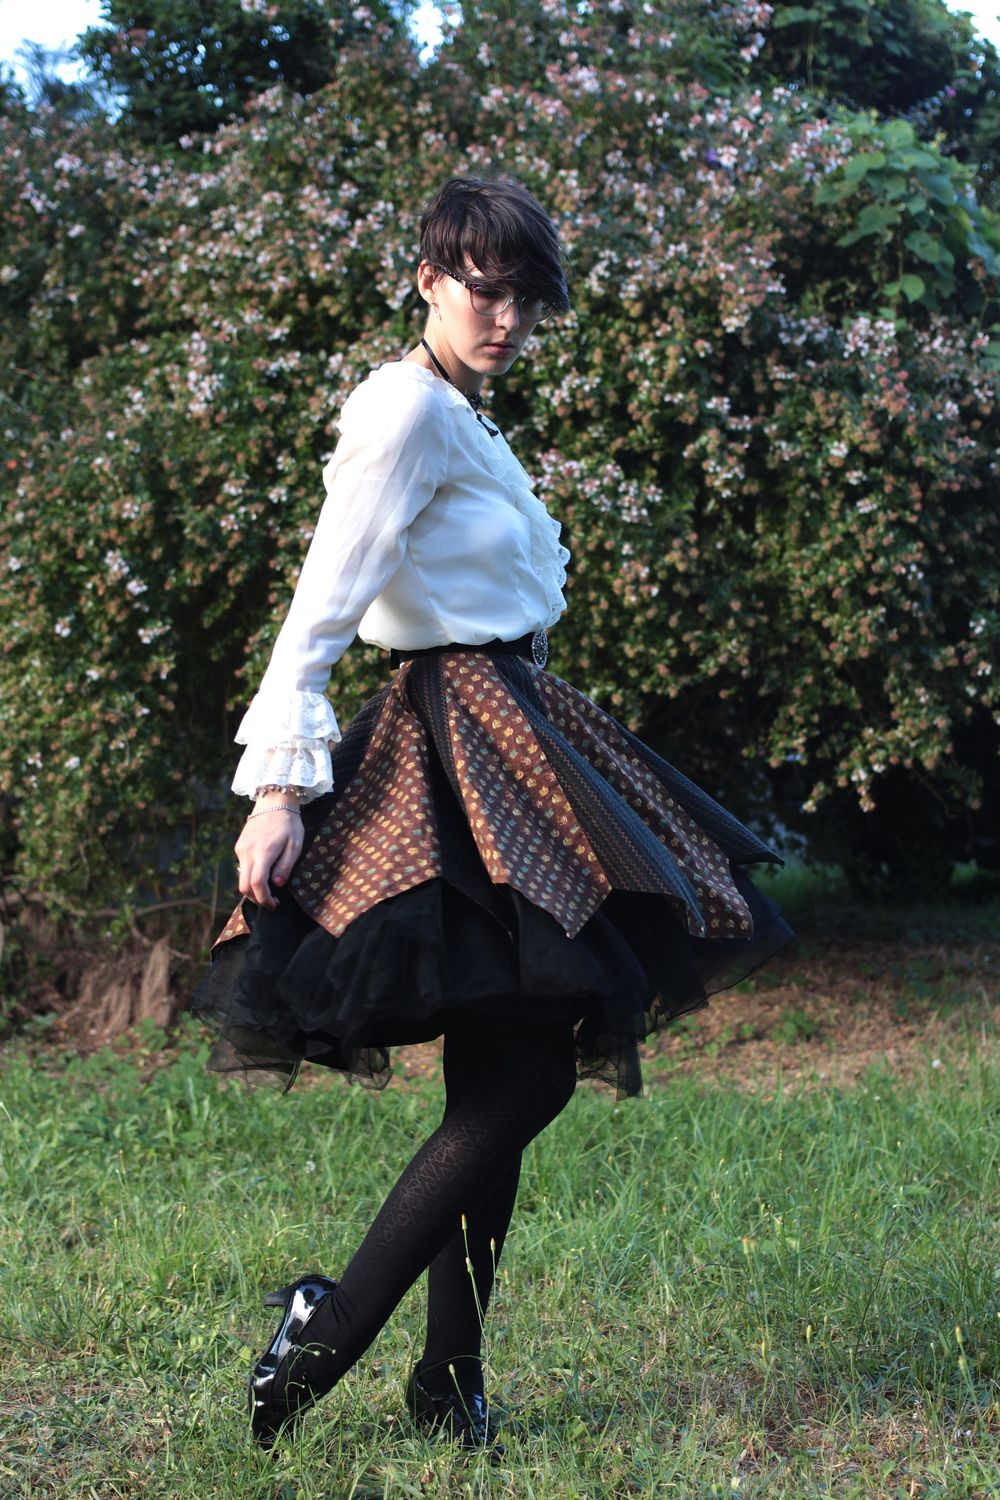 Shirt: Thrifted, Skirt Home Made, Belt: Thrifted, Tights: Coles, Shoes: so soft